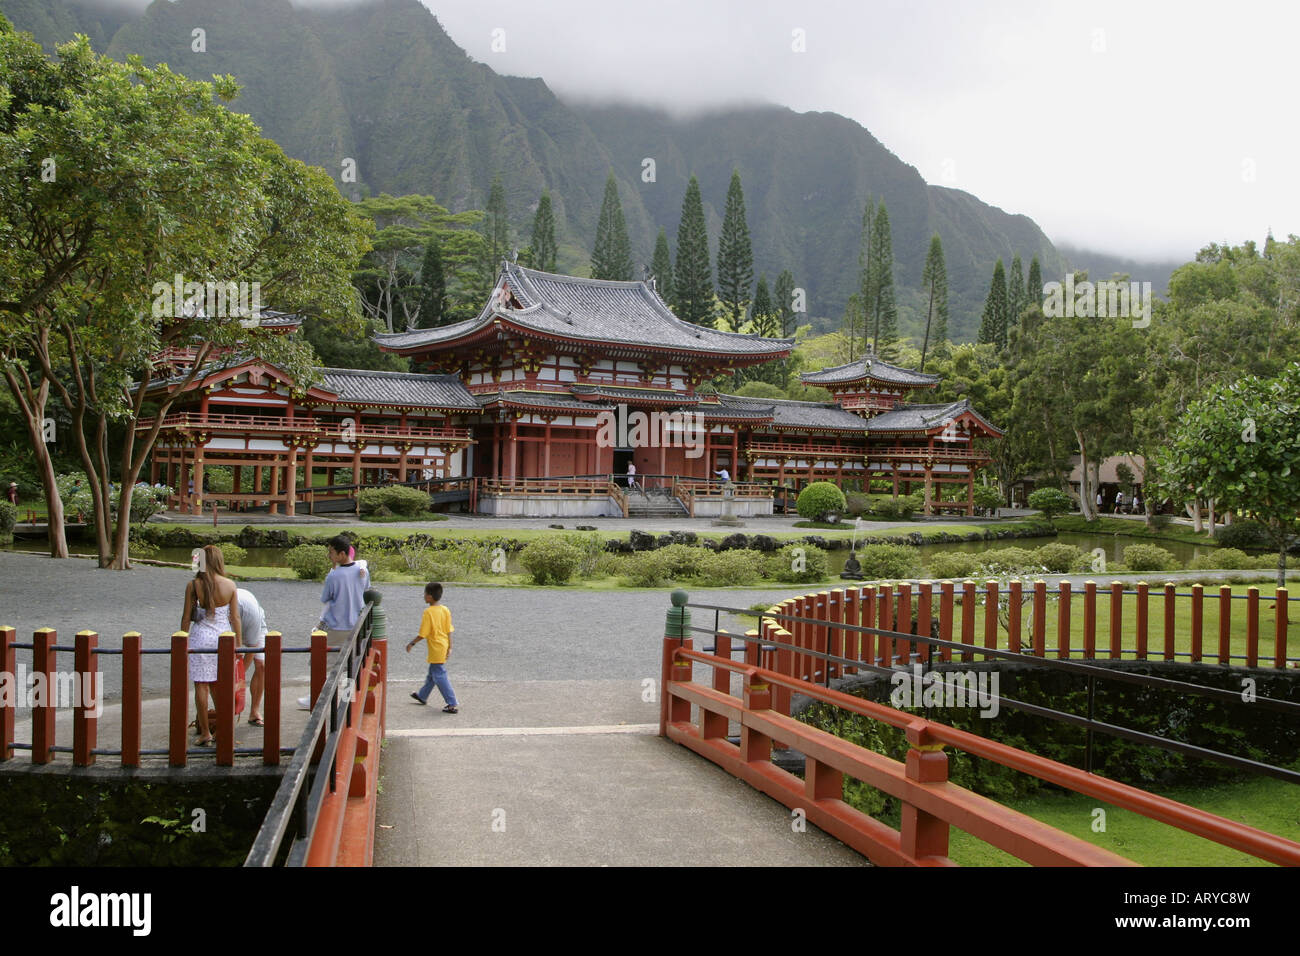 Beautiful Byodo-in Temple. An exact replica of the 900 year old Byodo-in Temple at Uji,japan. Located in the Valley - Stock Image